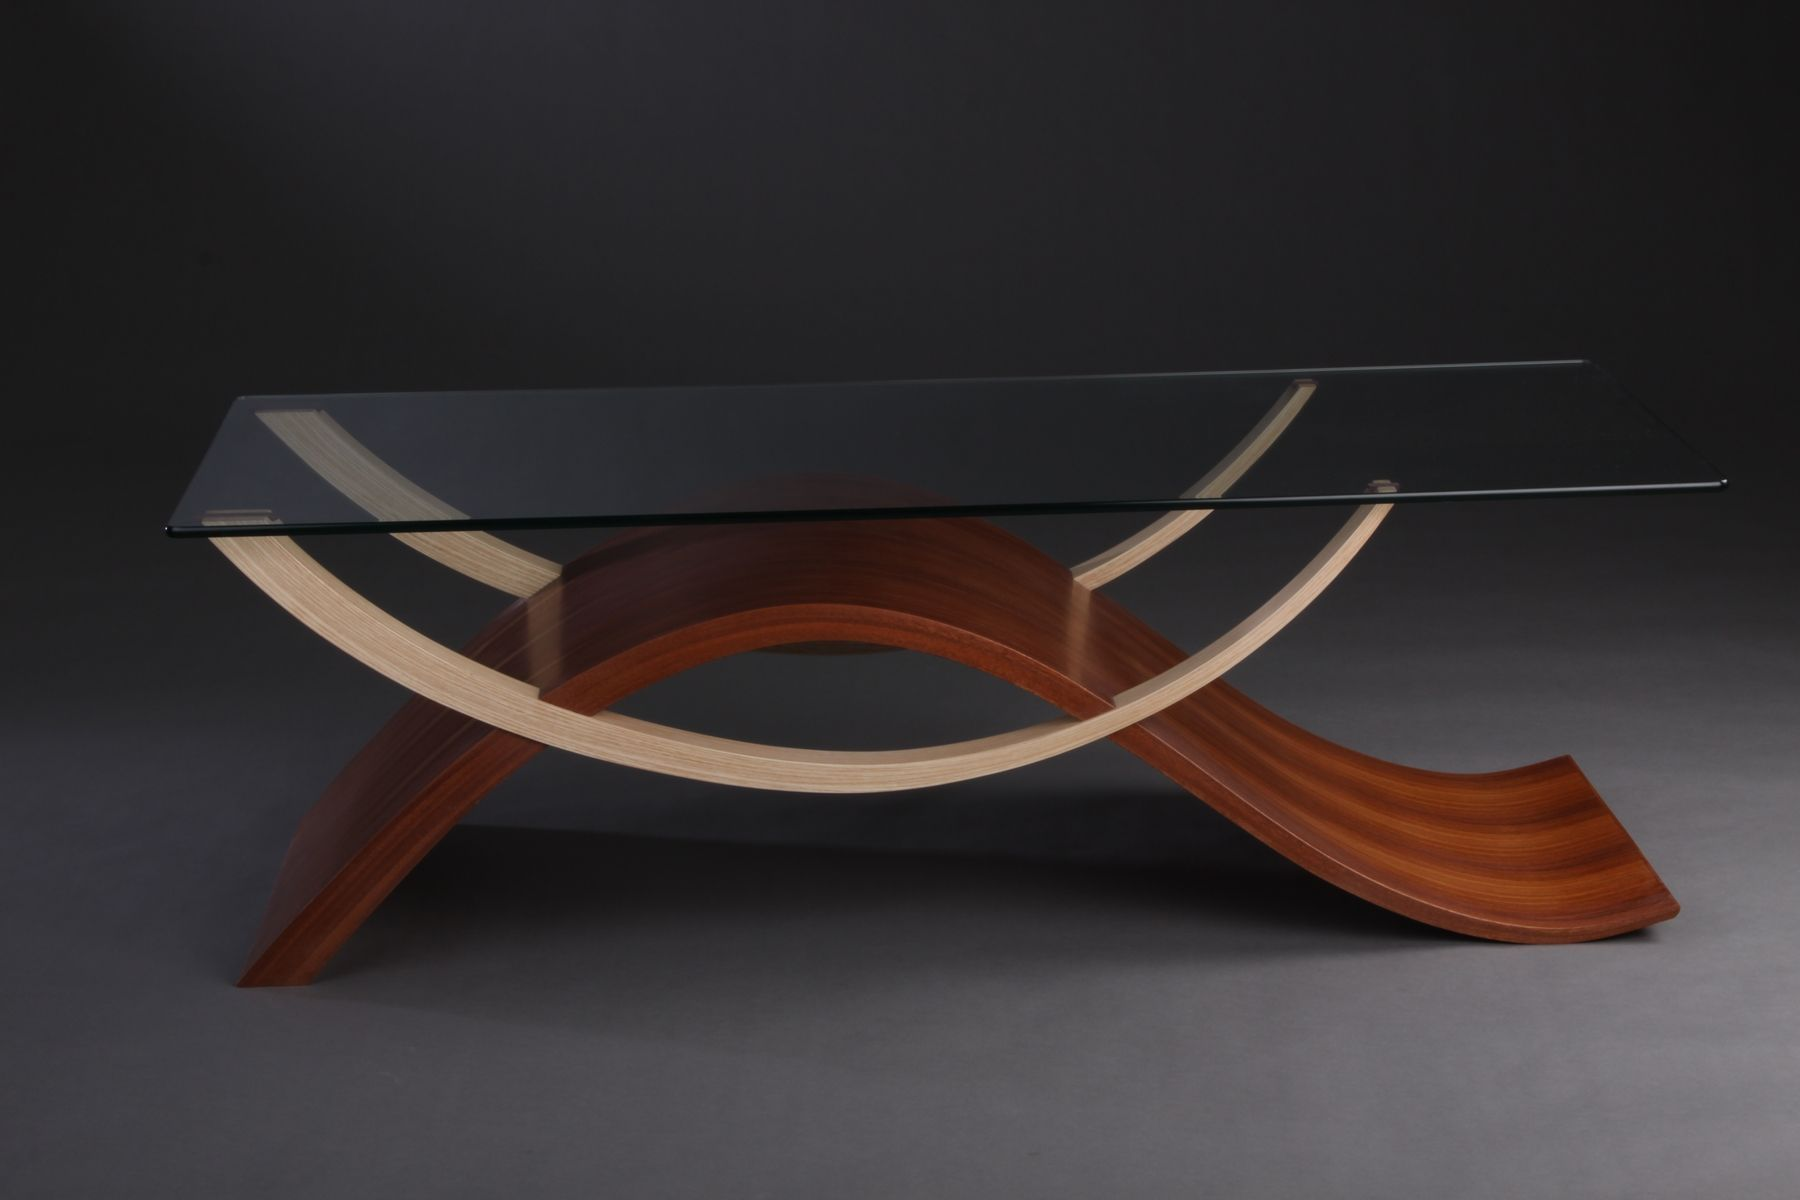 Custom Handcrafted Wave Form Coffee Table Coffee Table Design Modern Tea Table Design Coffee Table [ 1200 x 1800 Pixel ]